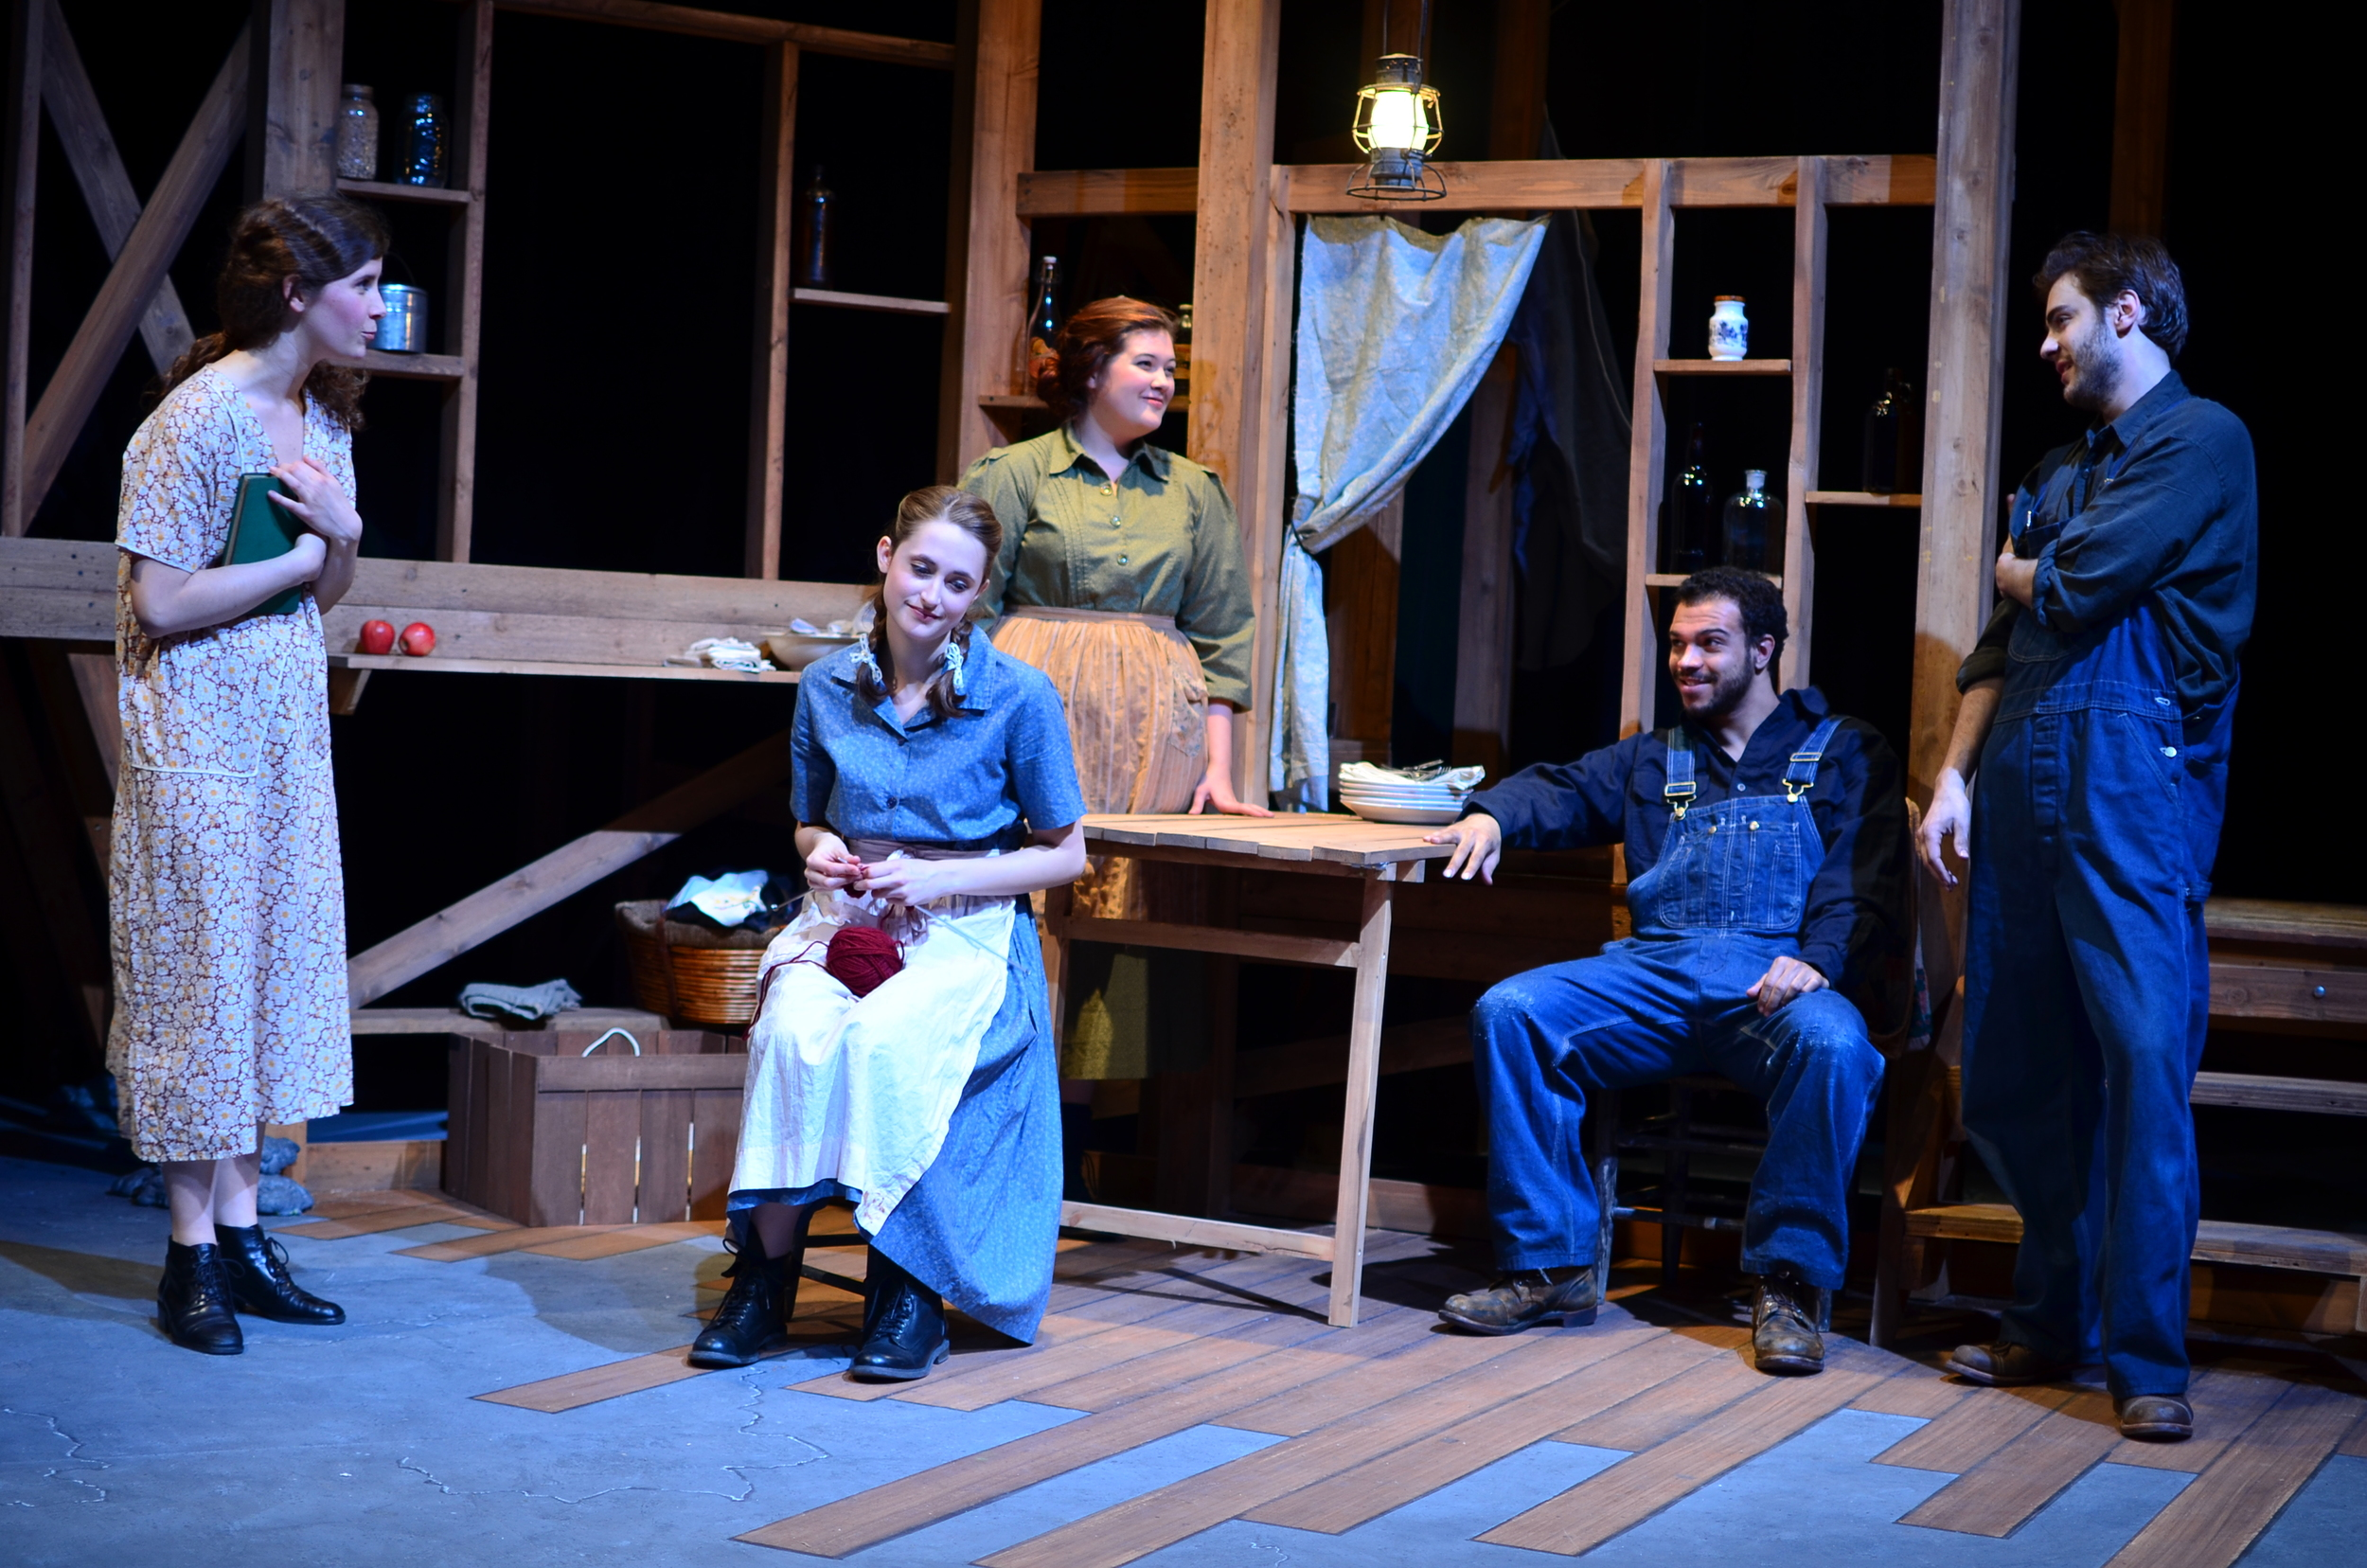 L to R: Orlena ( Laurel Durning-Hammond ), Sary ( Lucie Ledbetter ), Mae ( Mary Bolt ), James ( Carter Michael ), Ward ( Nathaniel Janis ).